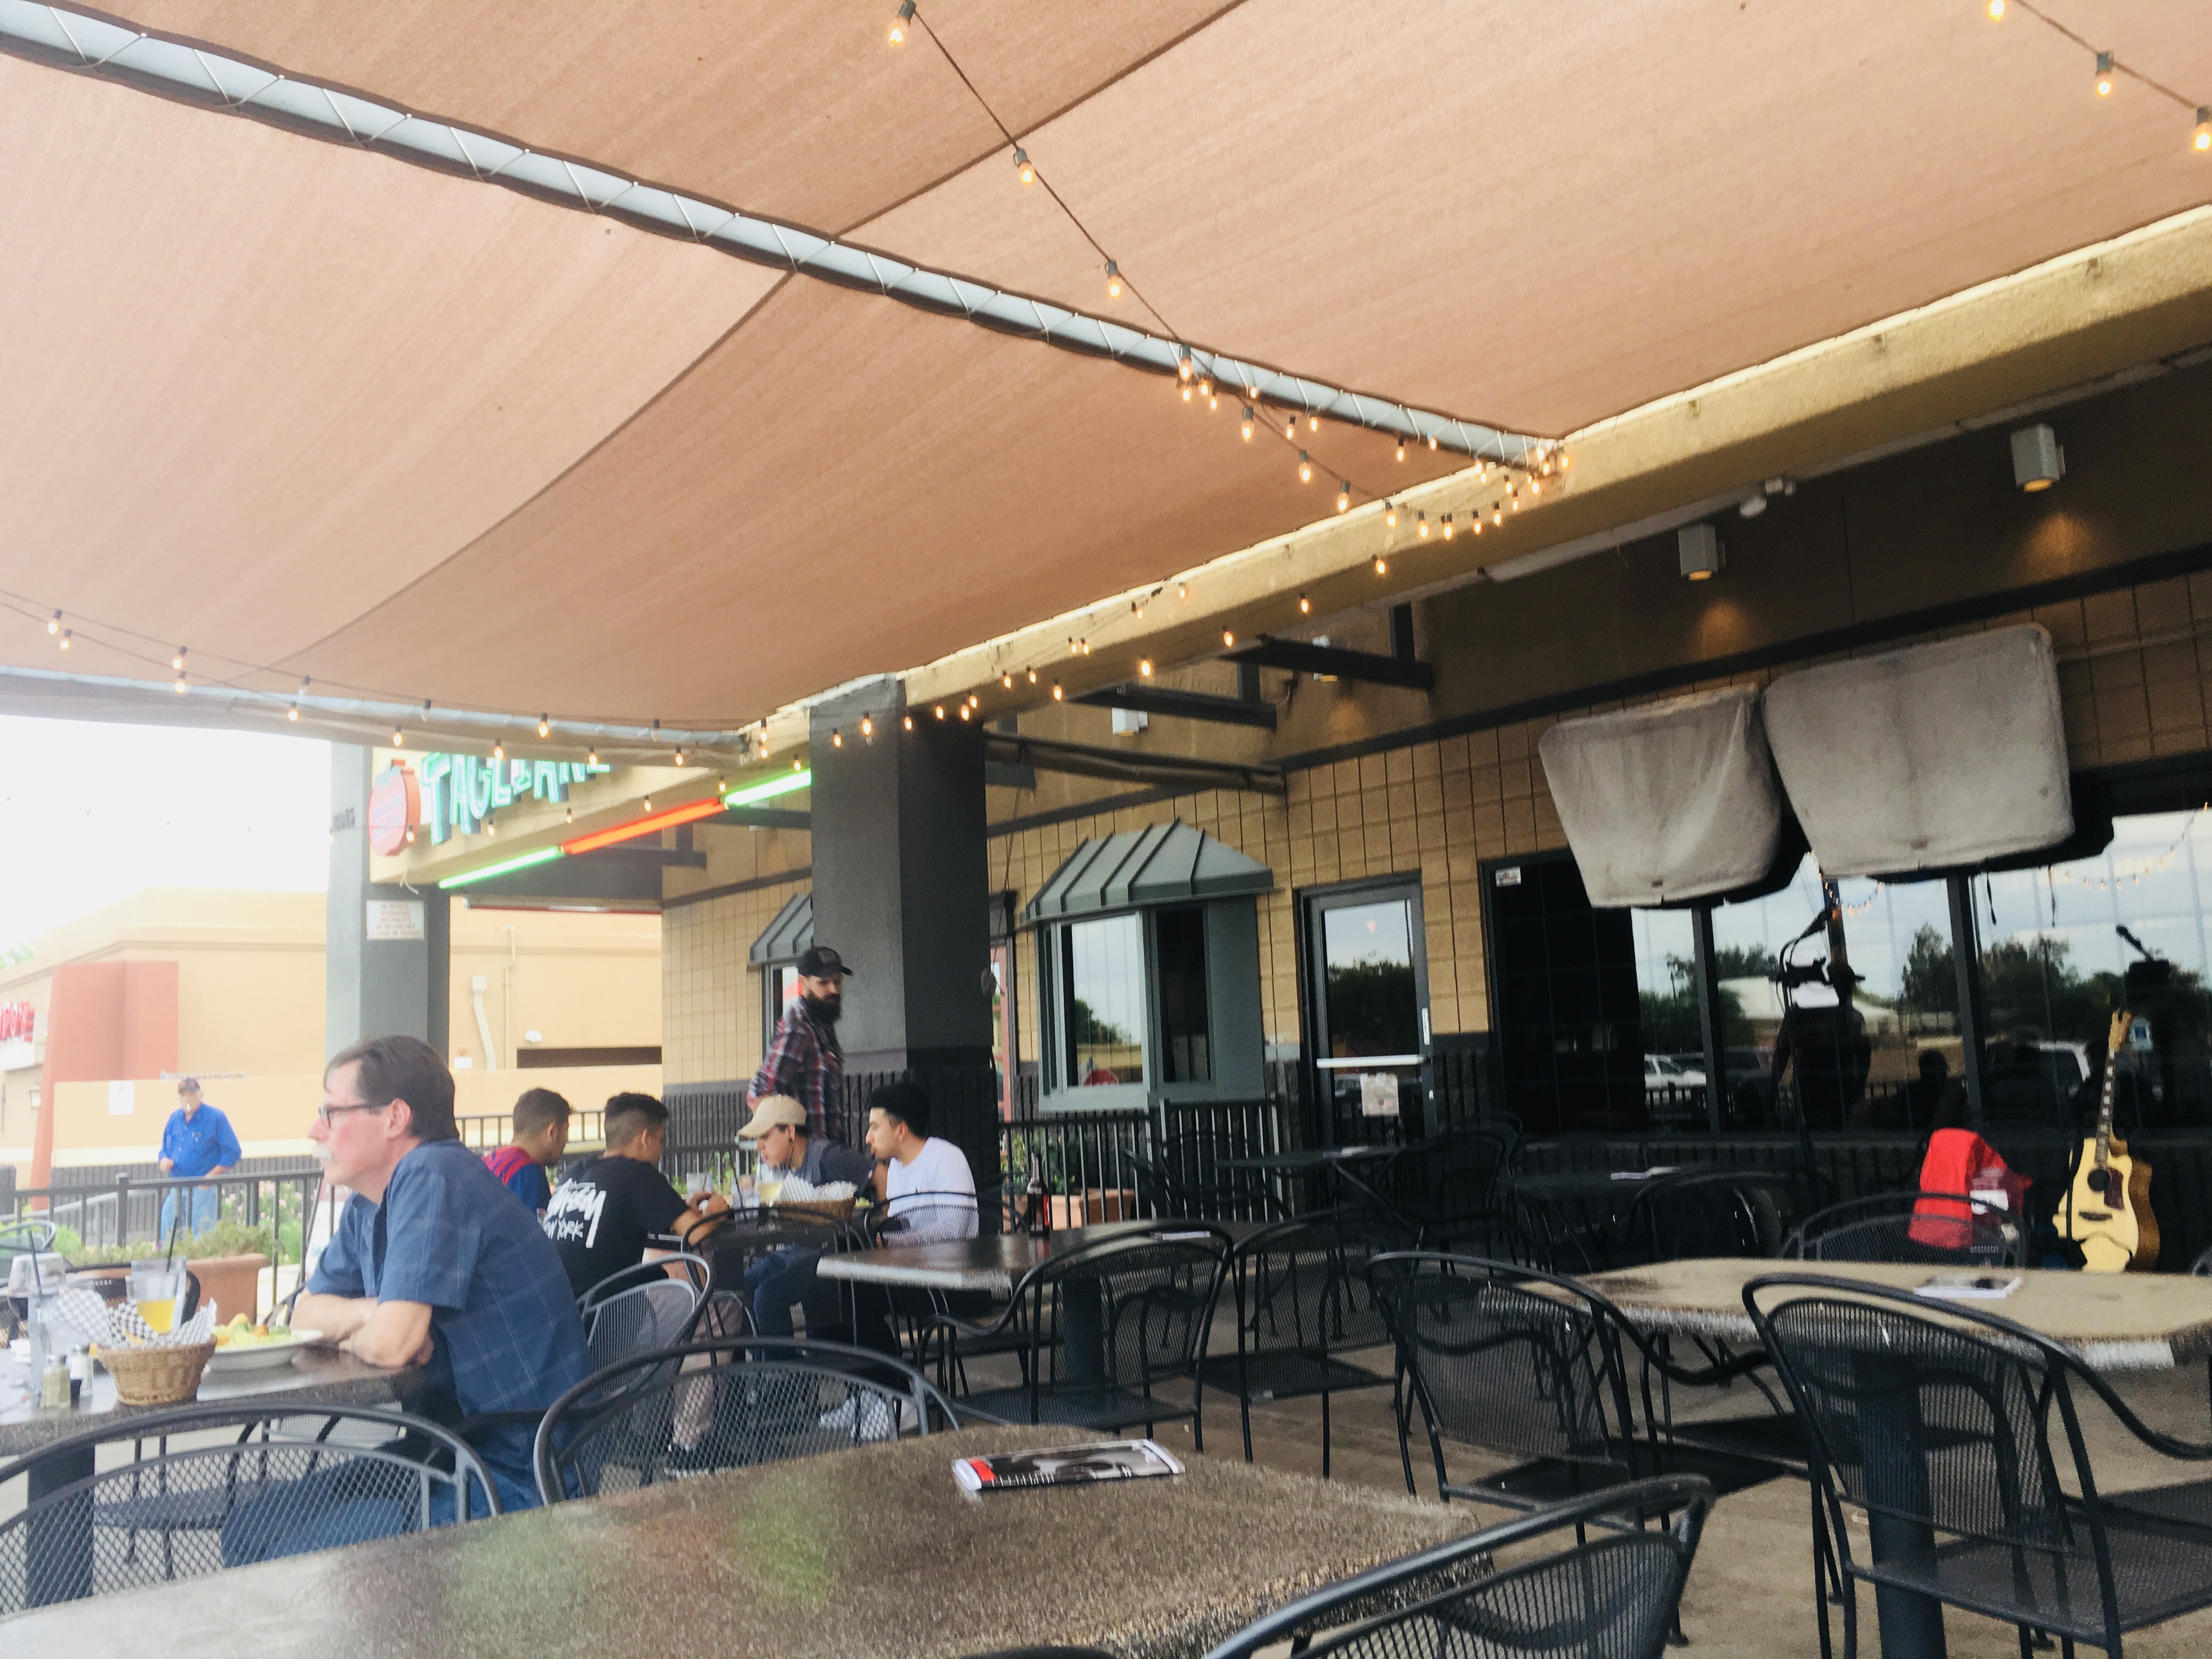 Cucina Tagliani Italian Kitchen - Glendale Dog Friendly Patios In Metro Phoenix Arizona Theforkingtruth